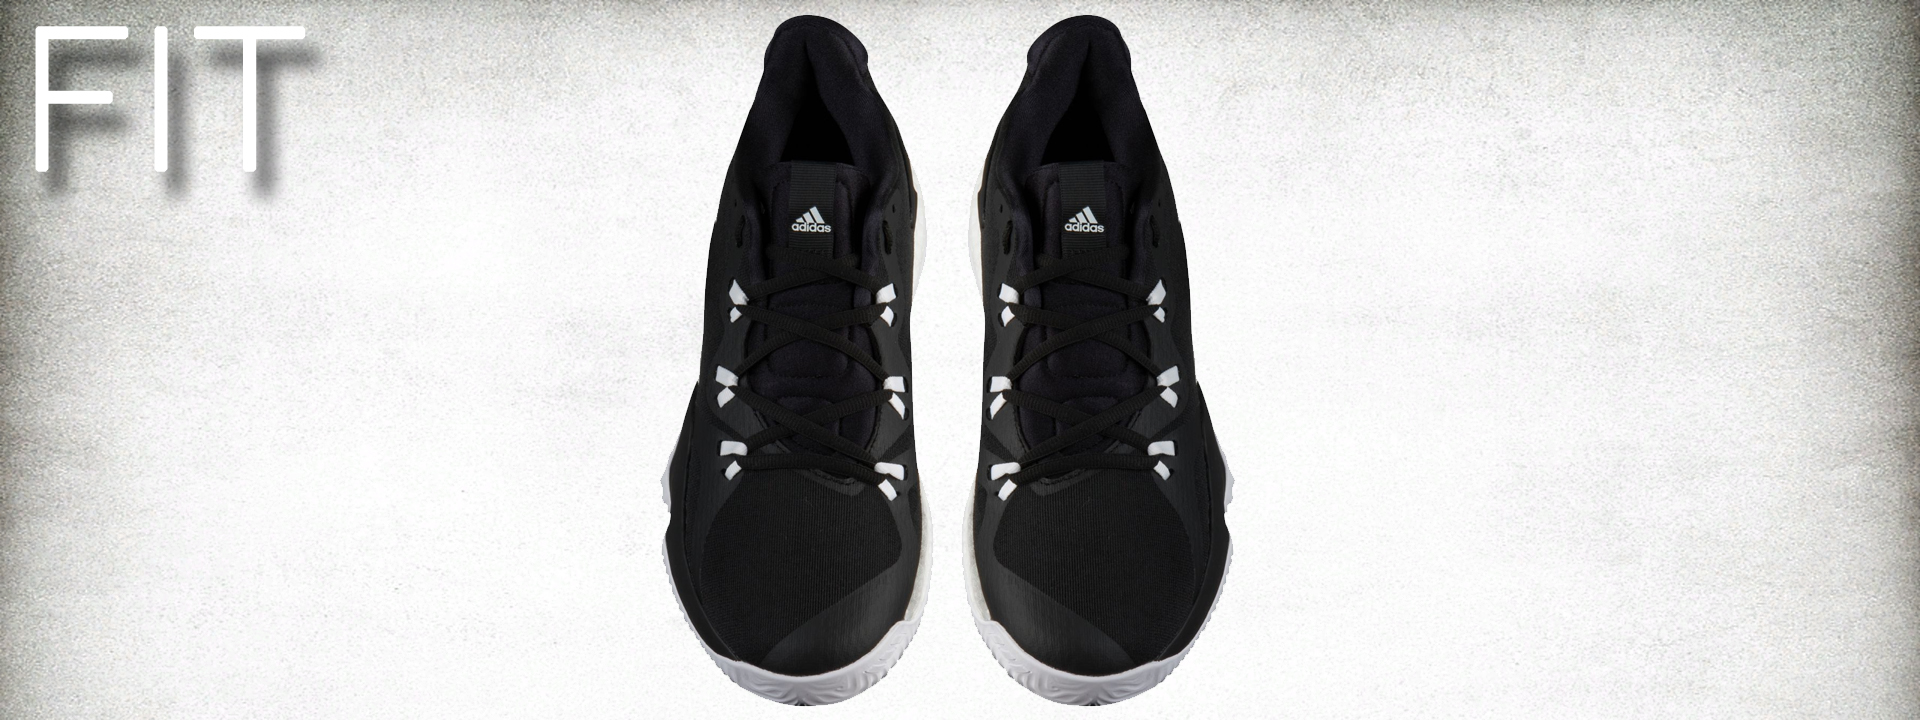 adidas Crazylight Boost 2018 Performance Review Duke4005 fit